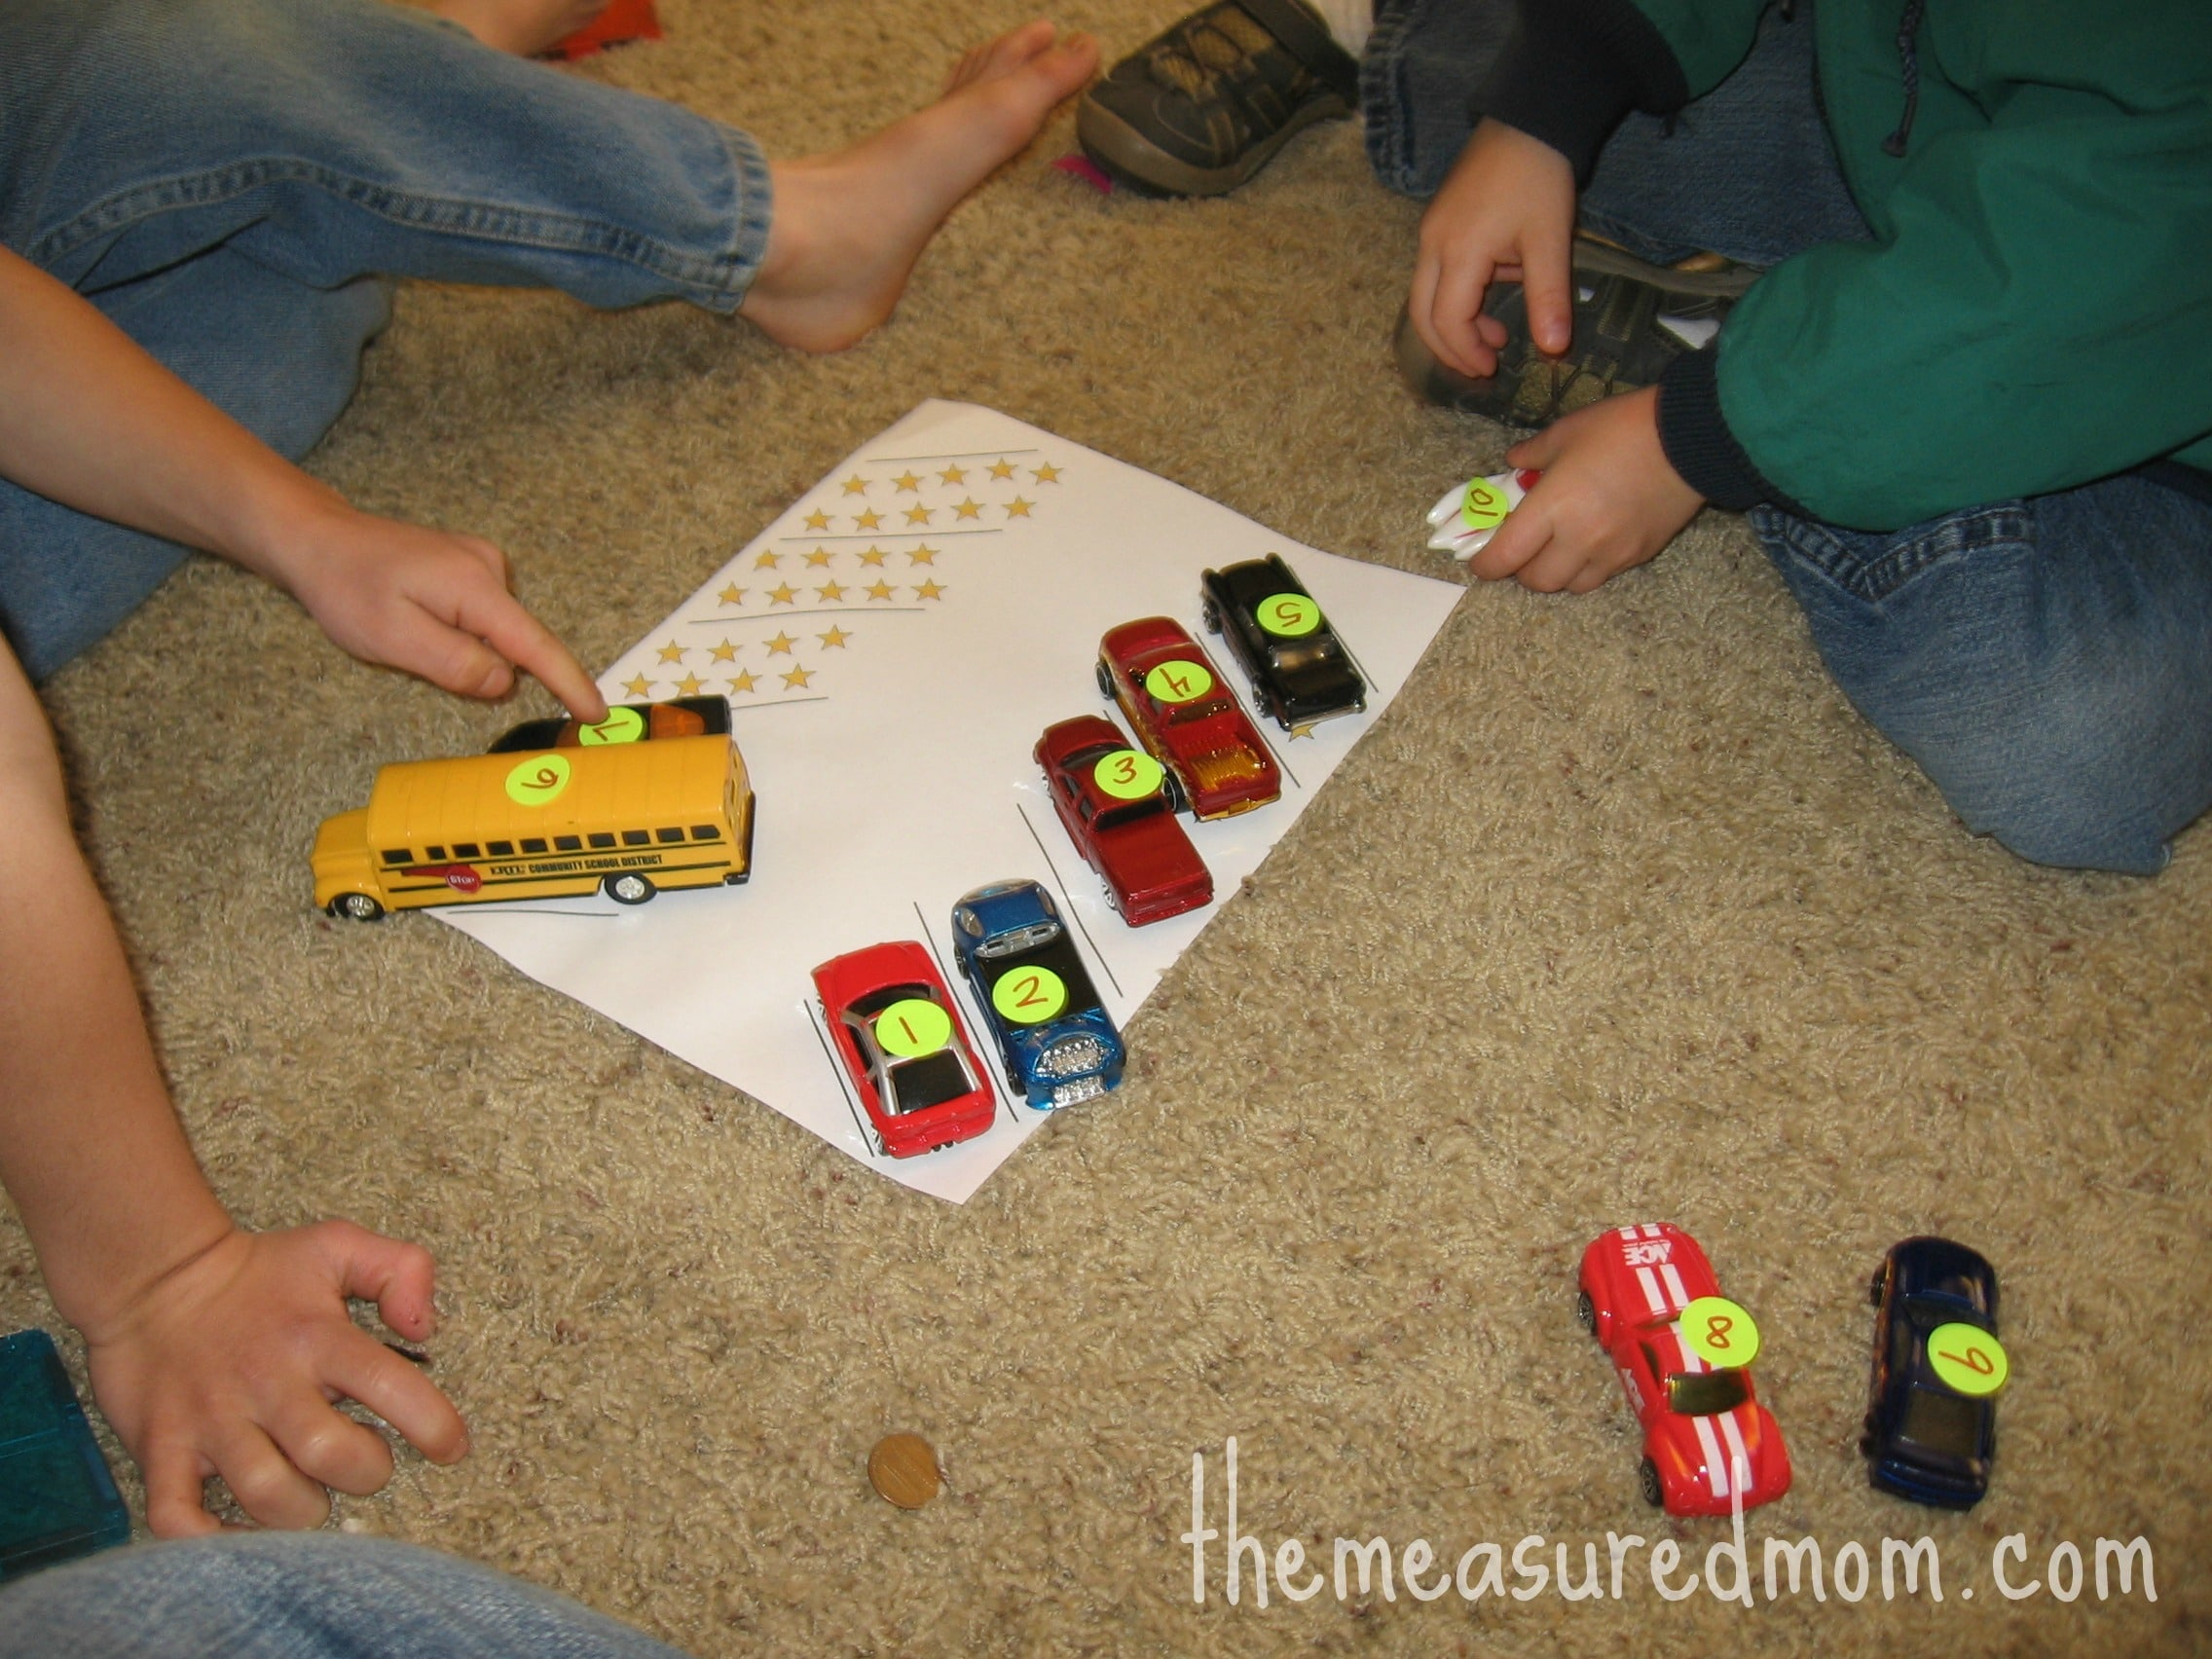 8 Preschool Math Ideas Using Toy Vehicles The Measured Mom